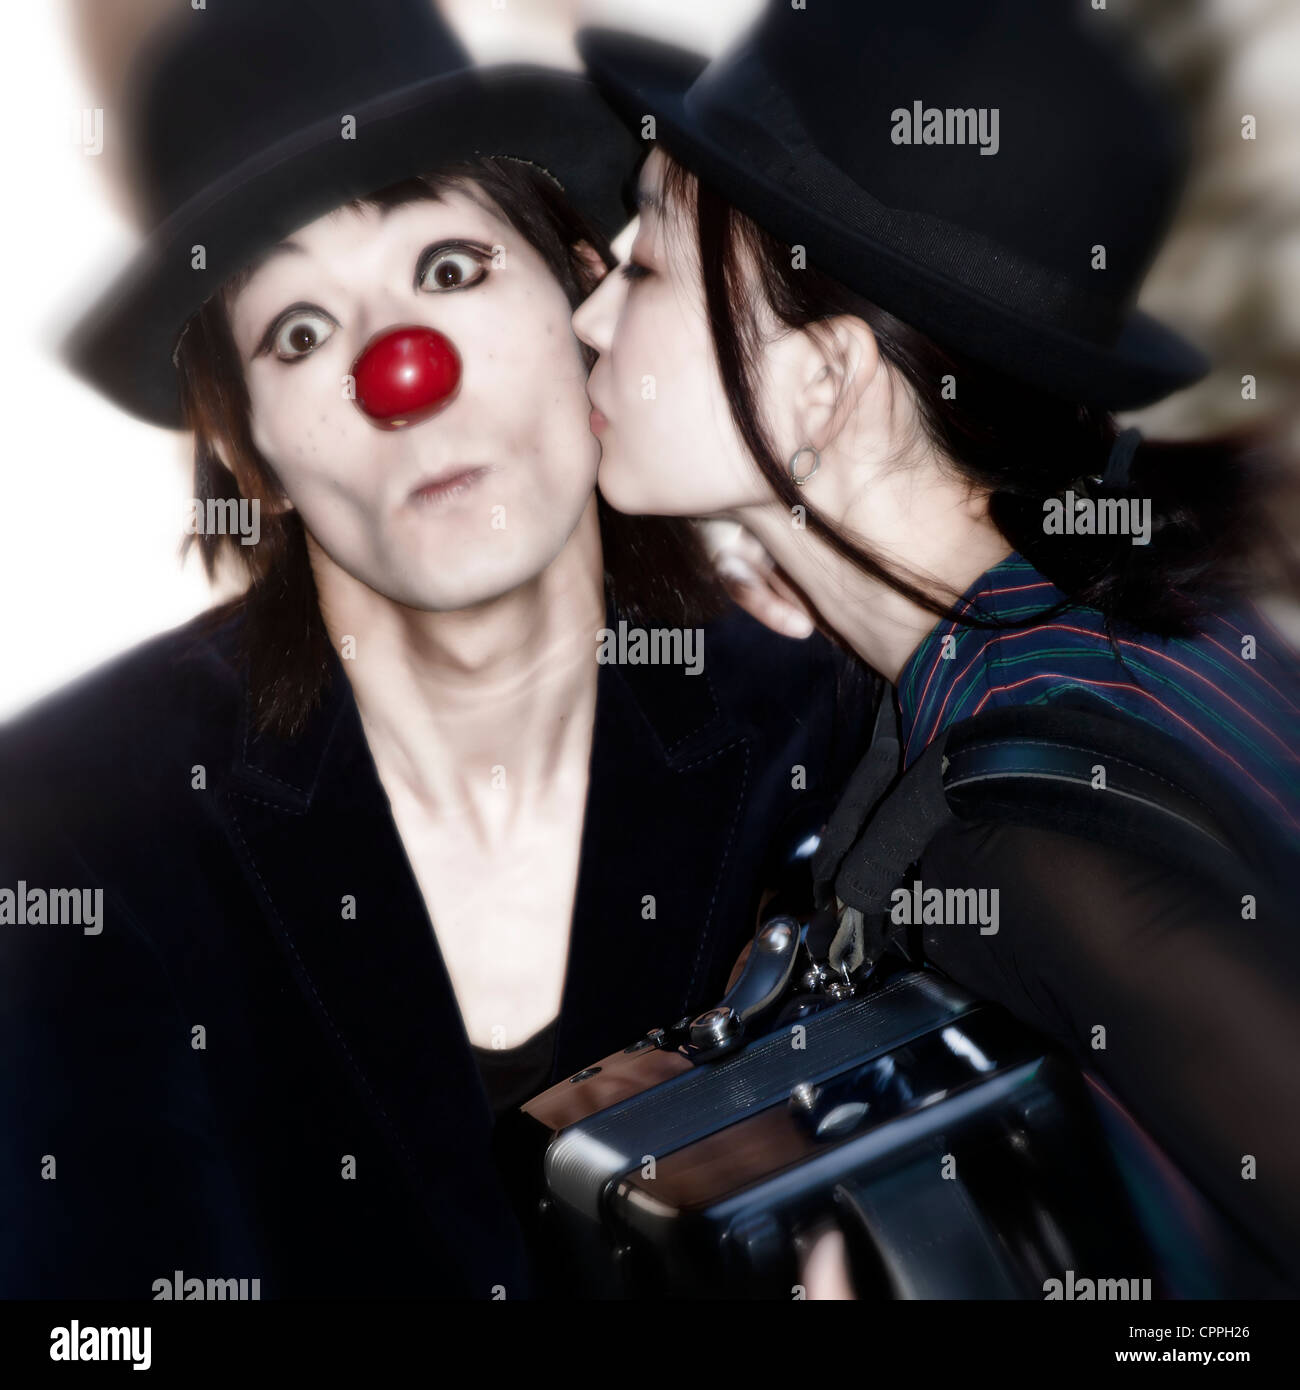 a couple of clowns - the woman kisses the man - Stock Image